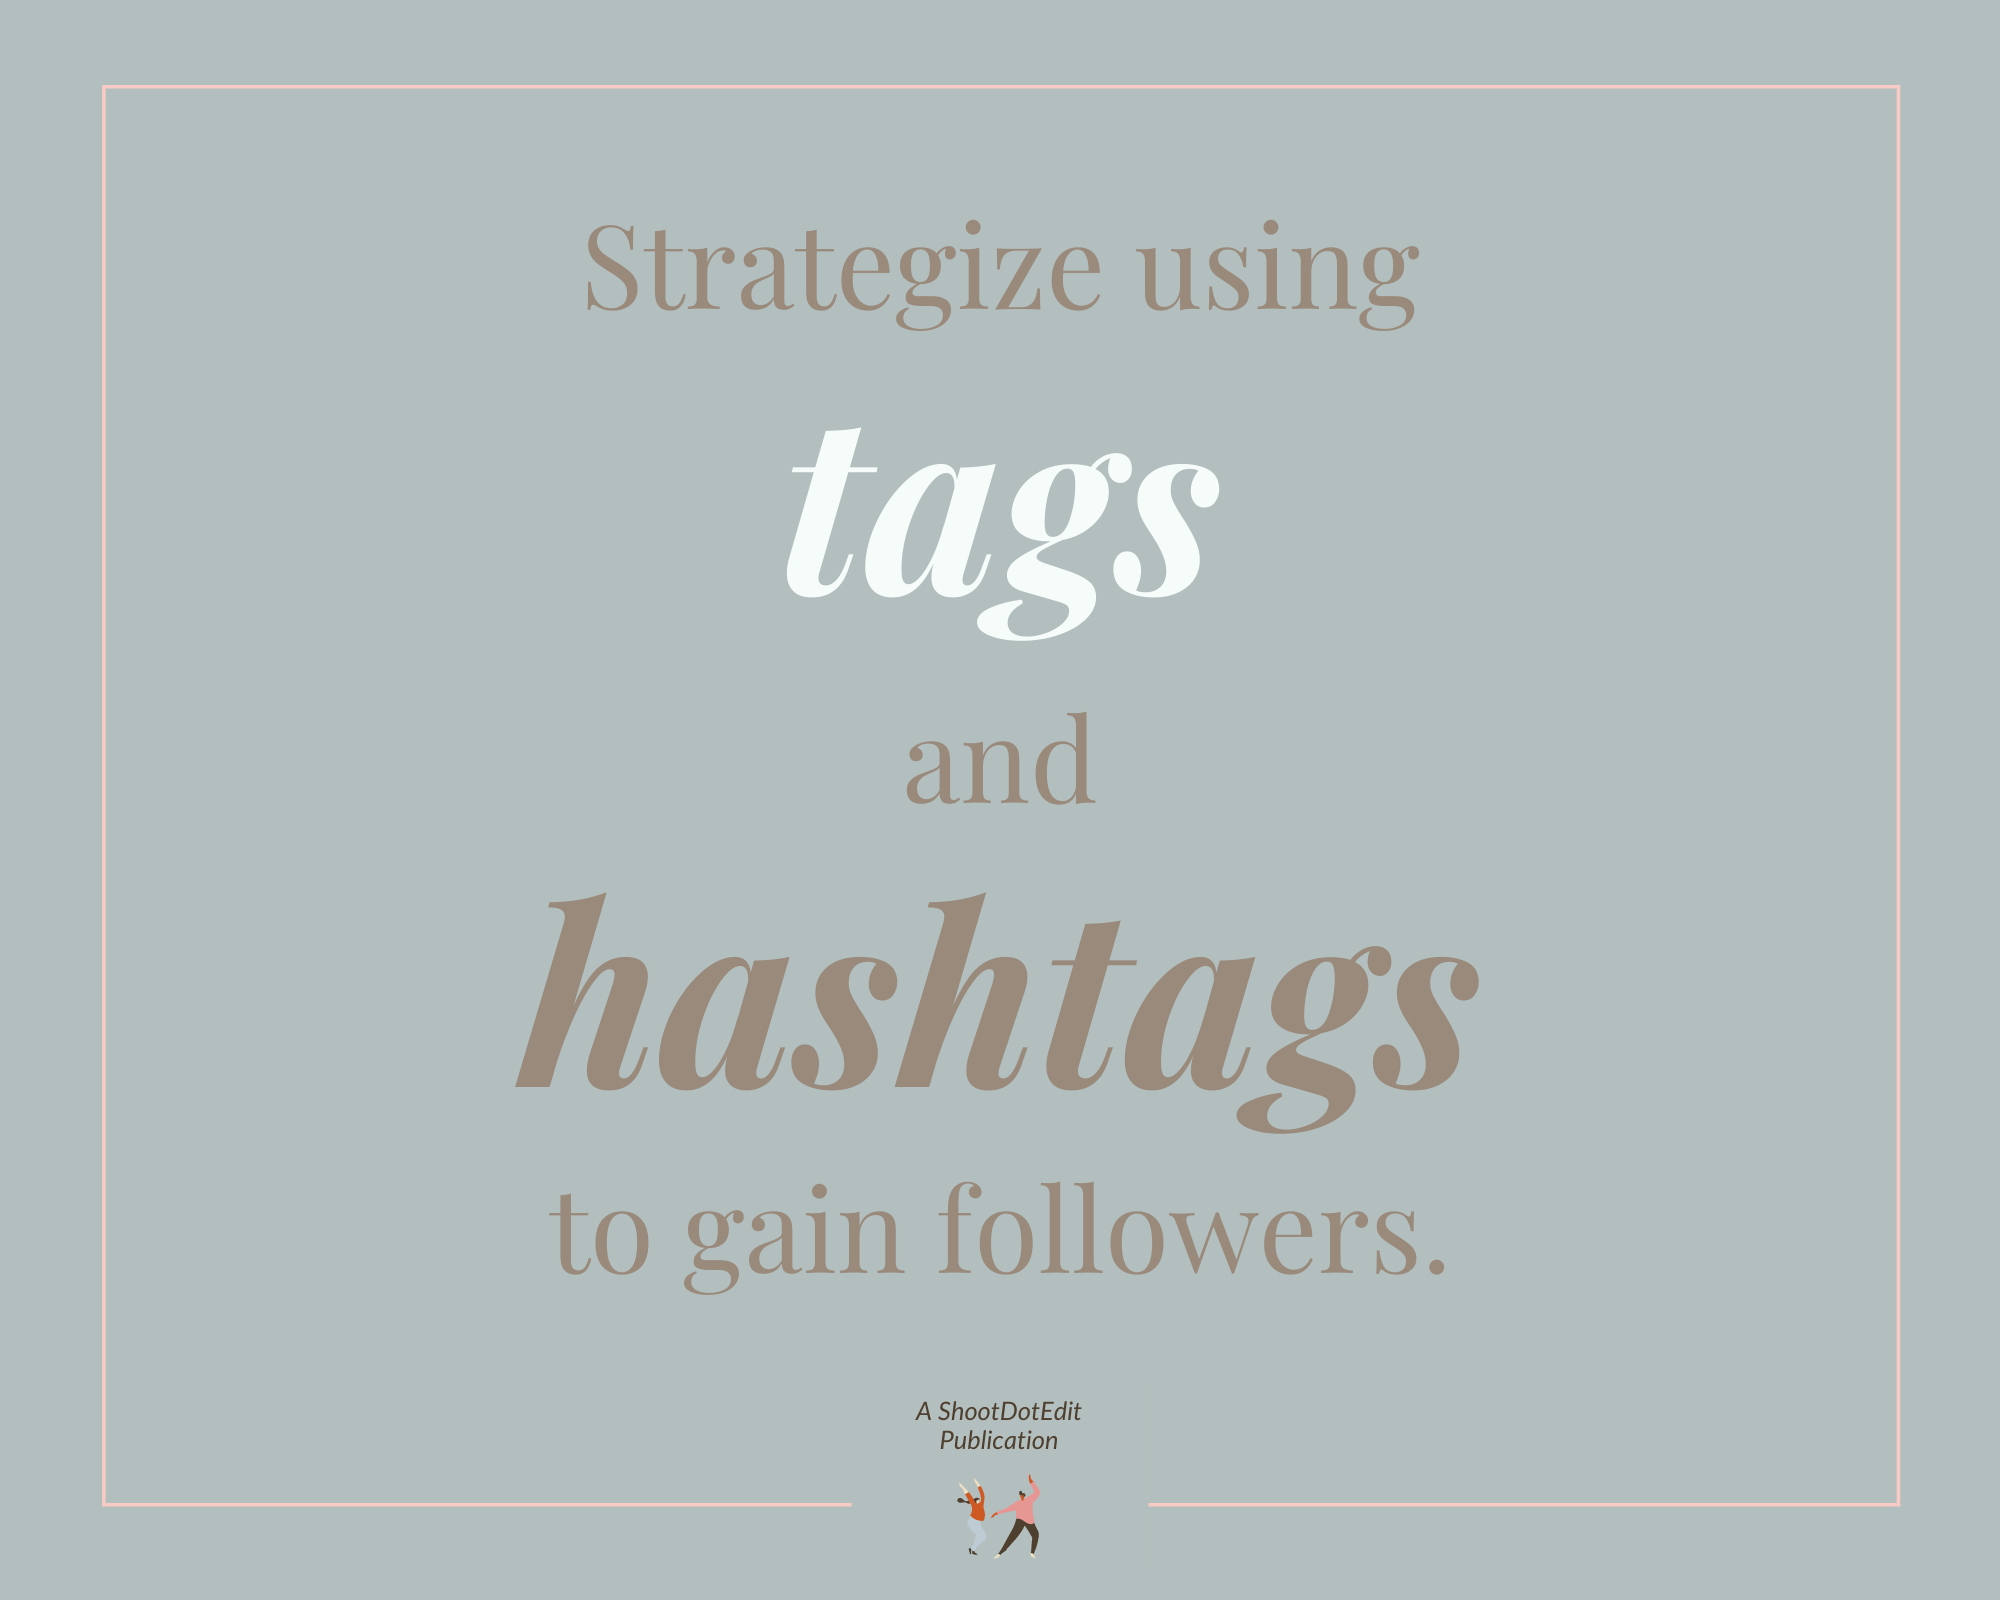 graphic showing strategize using tags and hashtags to gain followers.